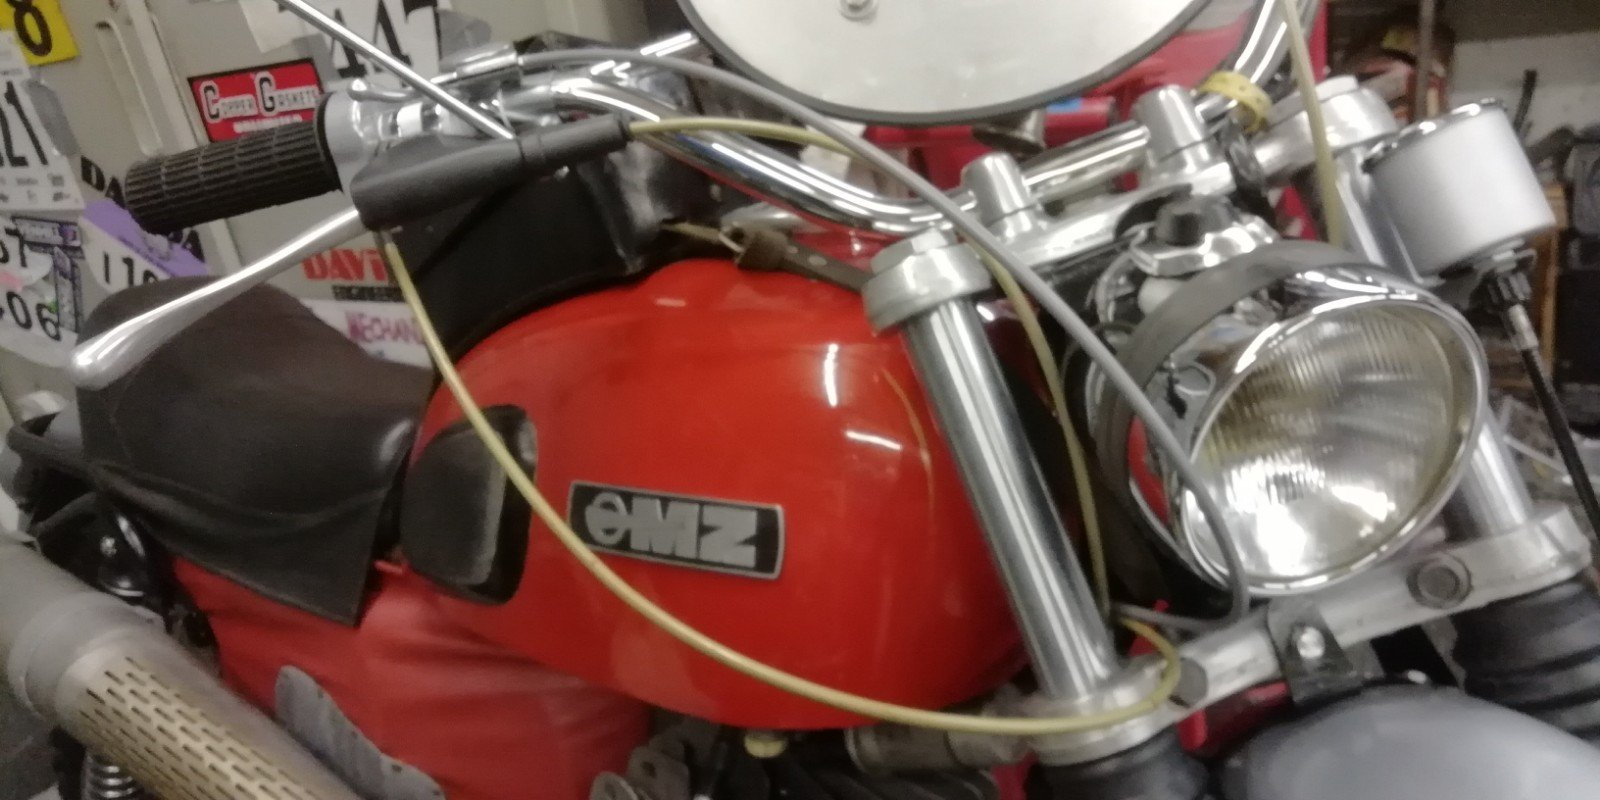 1975 MZ ETS 250/1 G5 ISDT For Sale (picture 5 of 6)